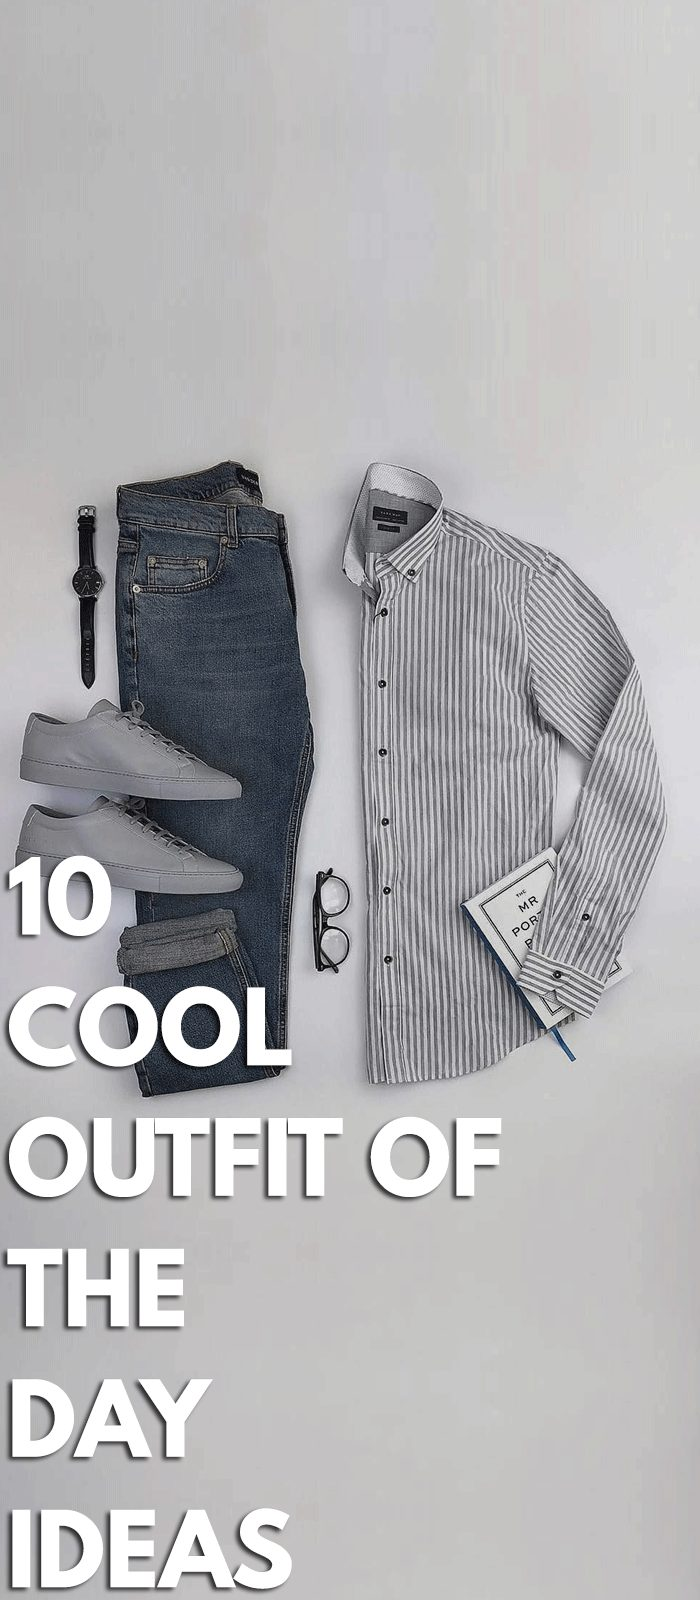 10 Cool Outfit Ideas!